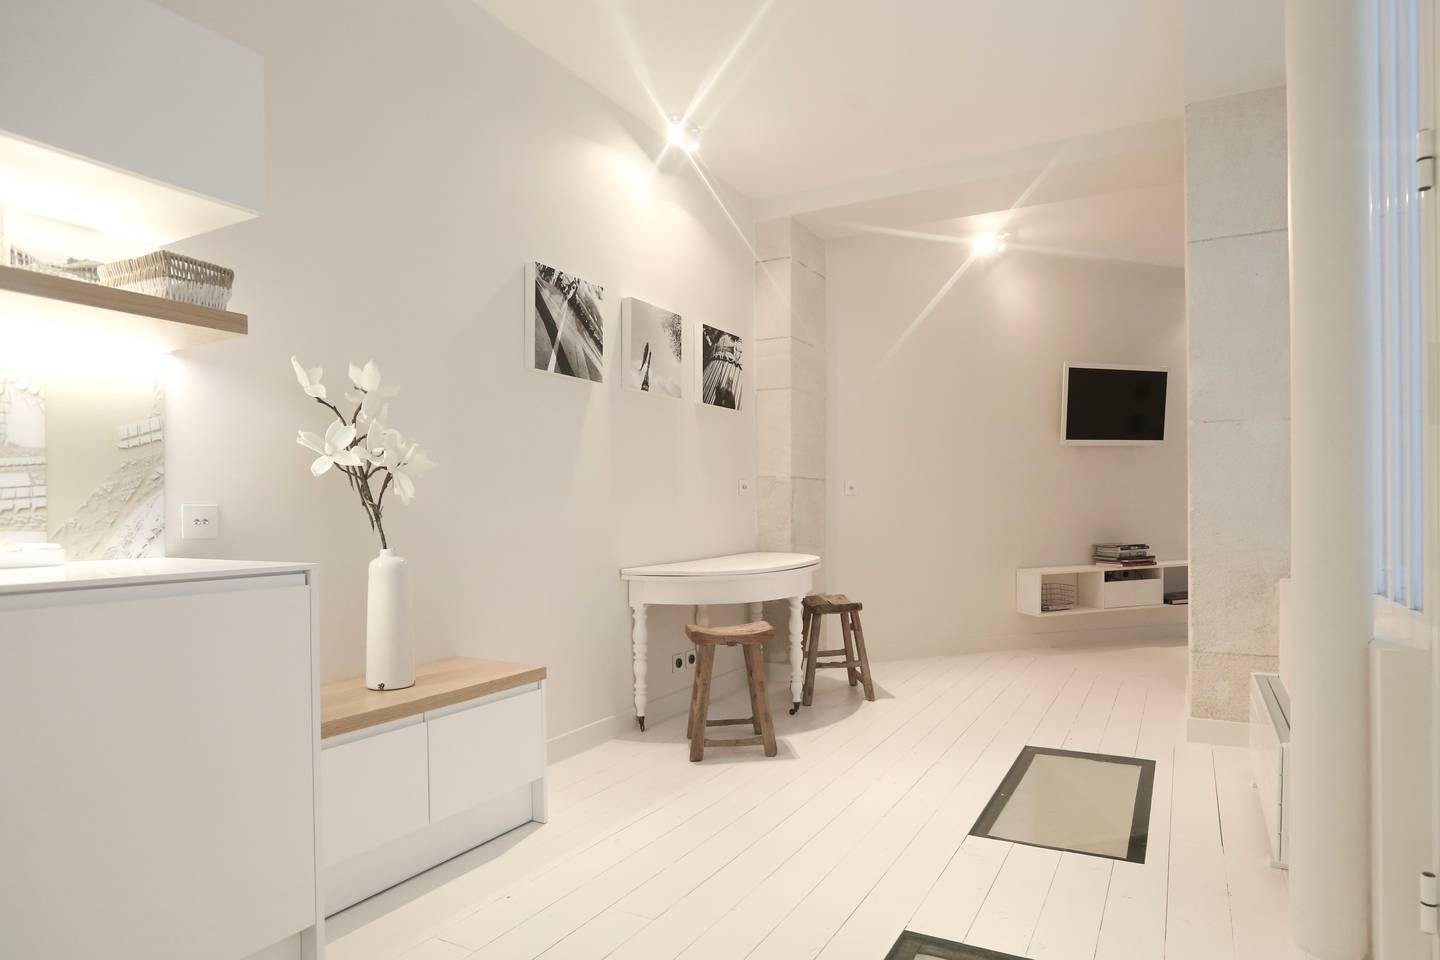 paris airbnb apartment near museums and sacre couer